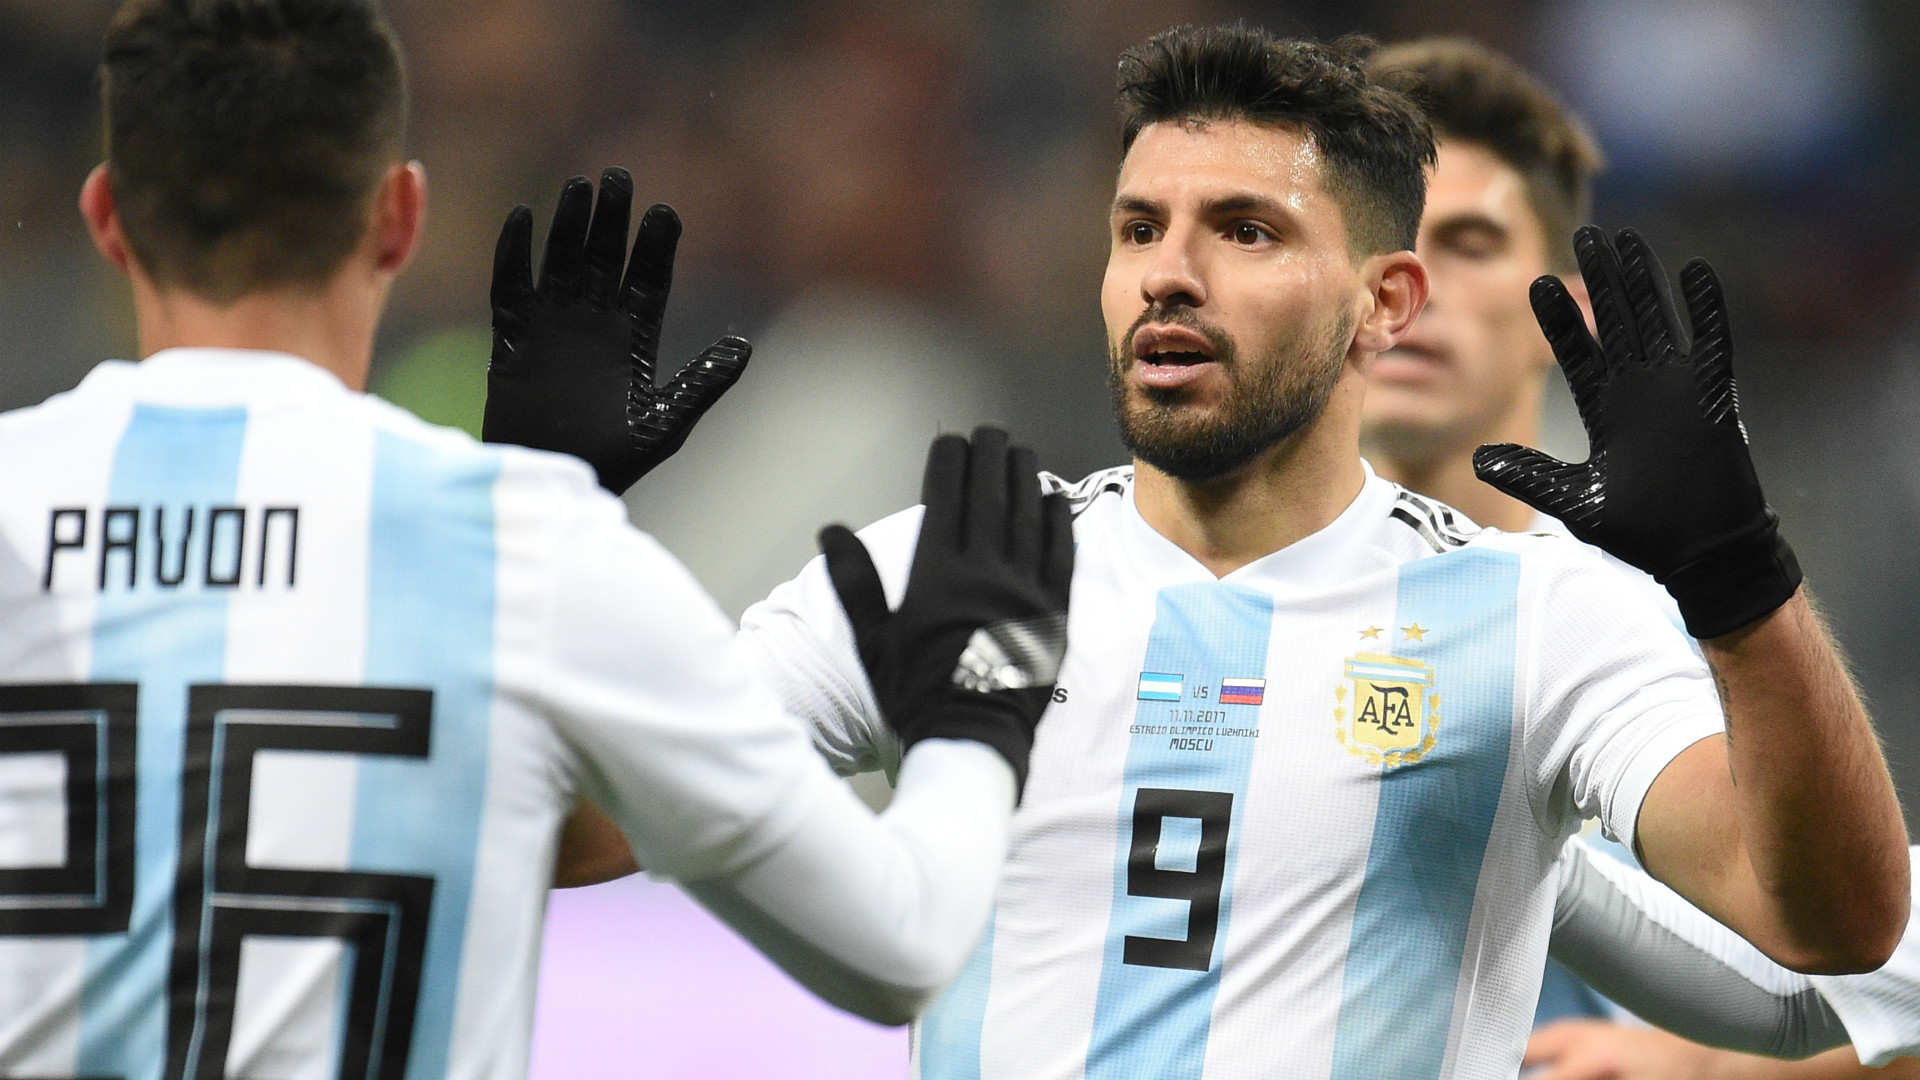 Sergio Aguero faints at half-time, taken to hospital during Argentina v Nigeria